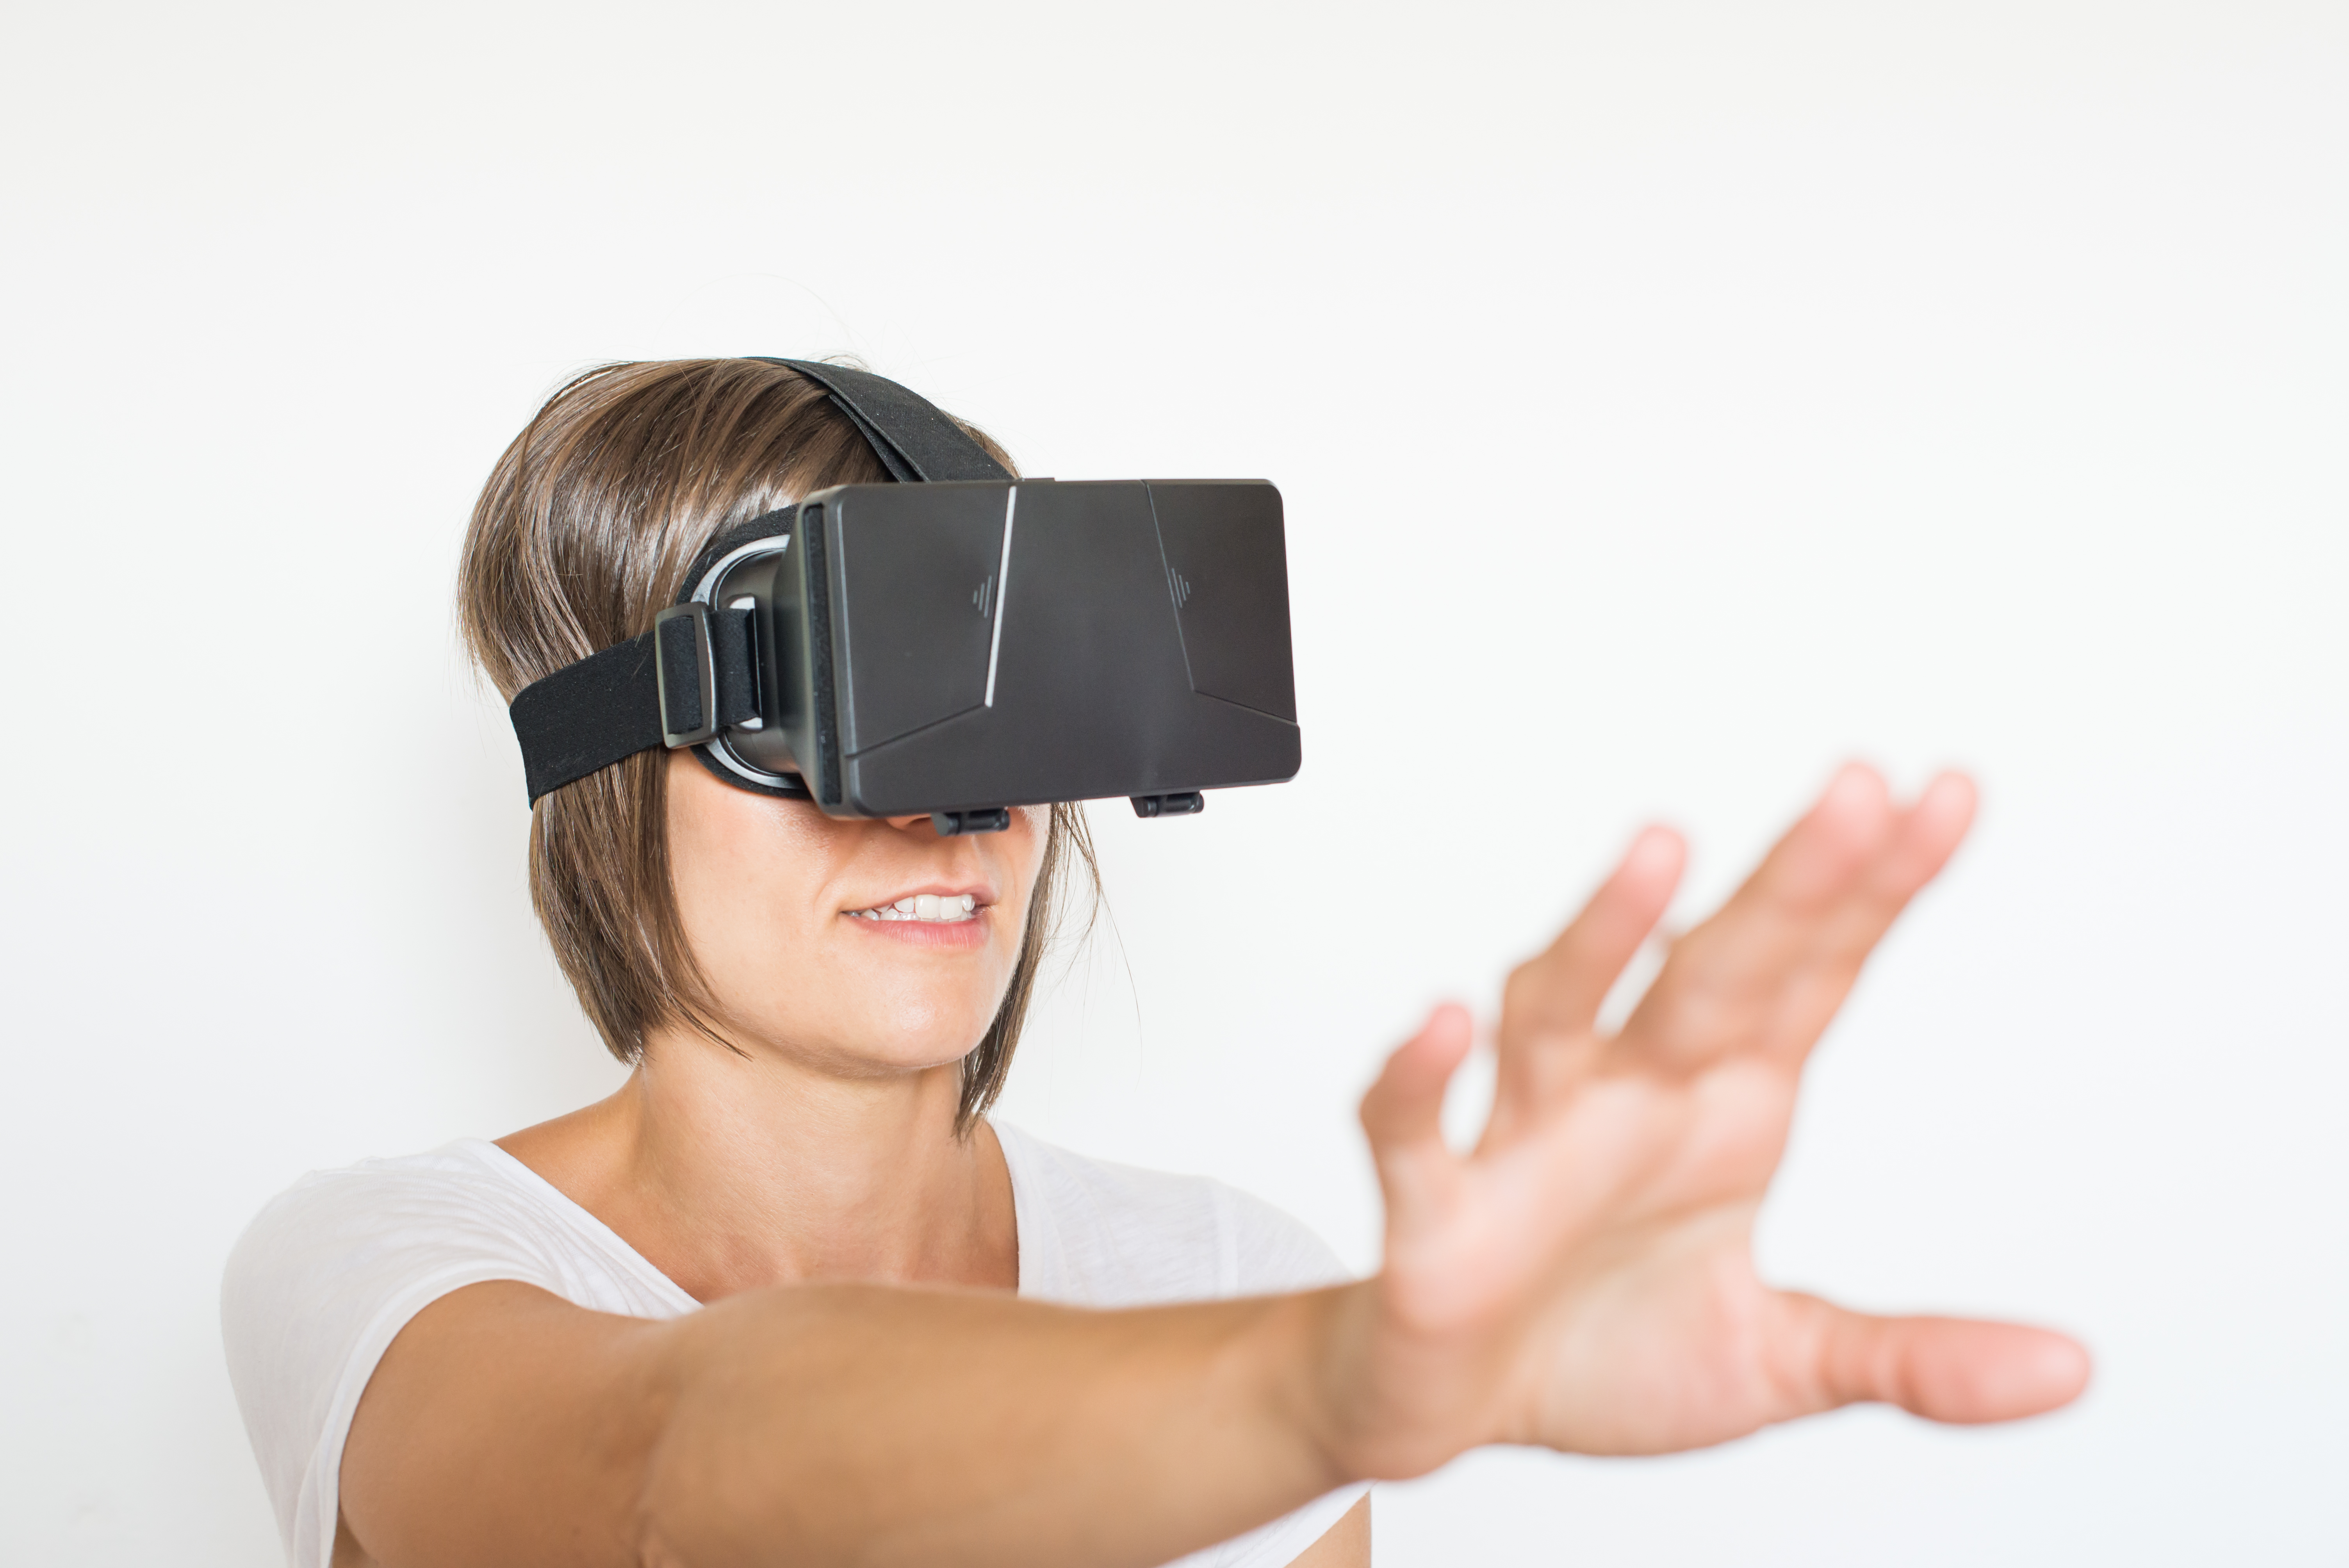 3D Gaming Technology